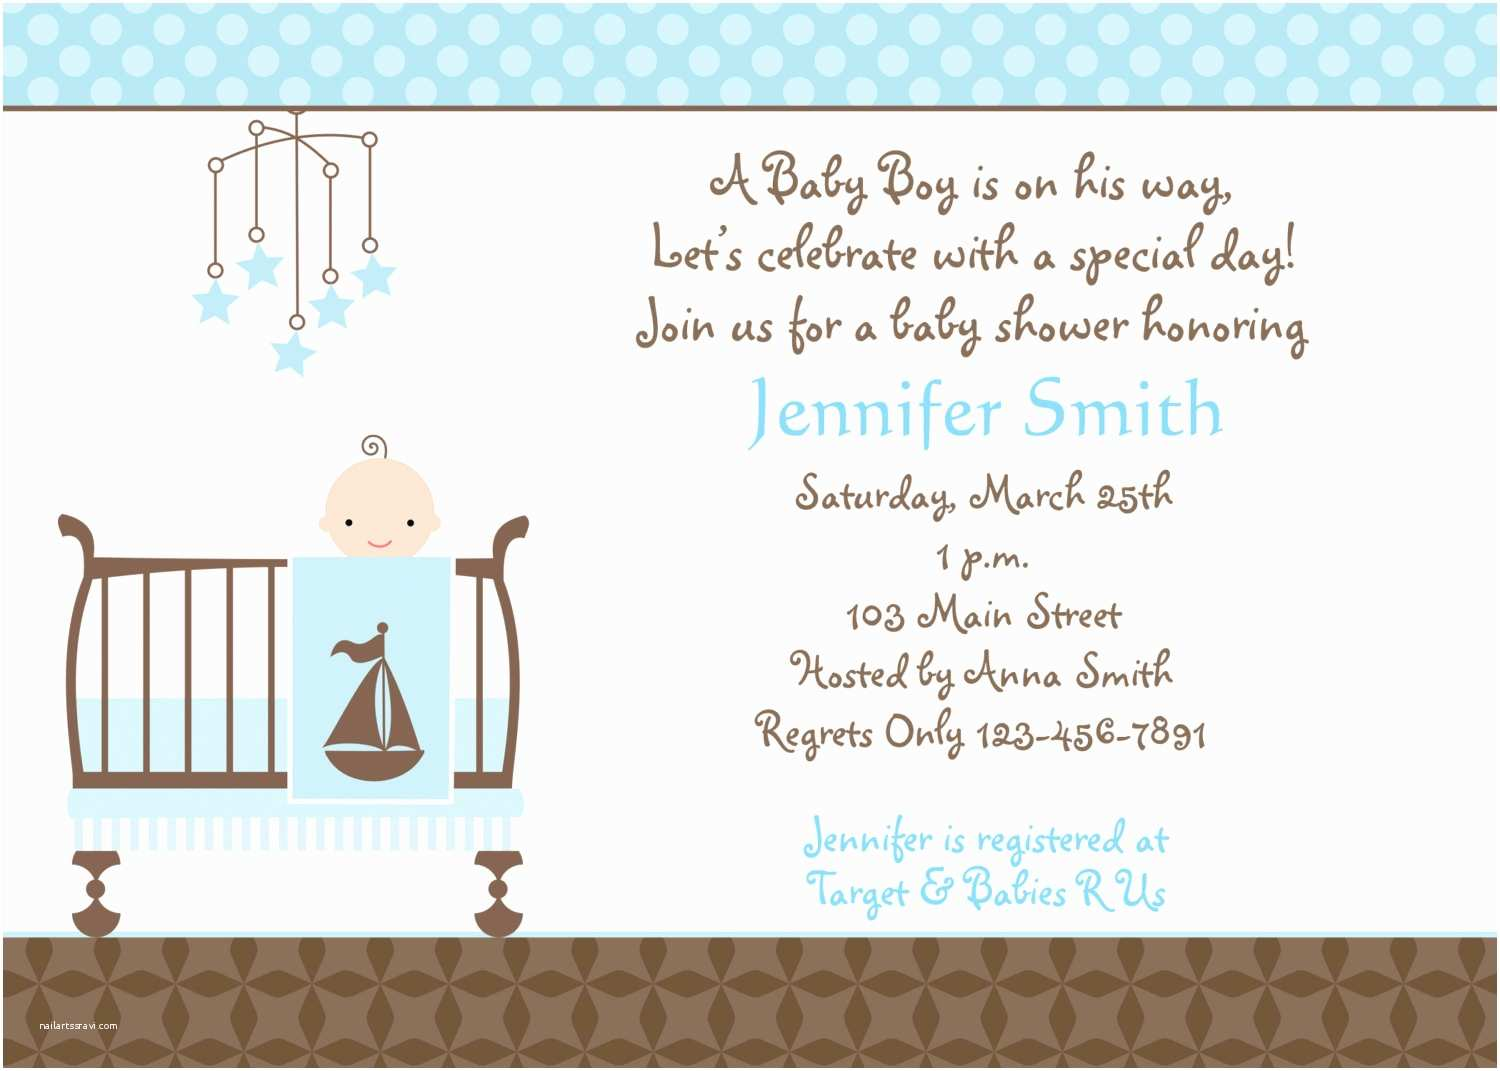 Party City Invitations for Baby Shower Template Baby Shower Invitations for Boy